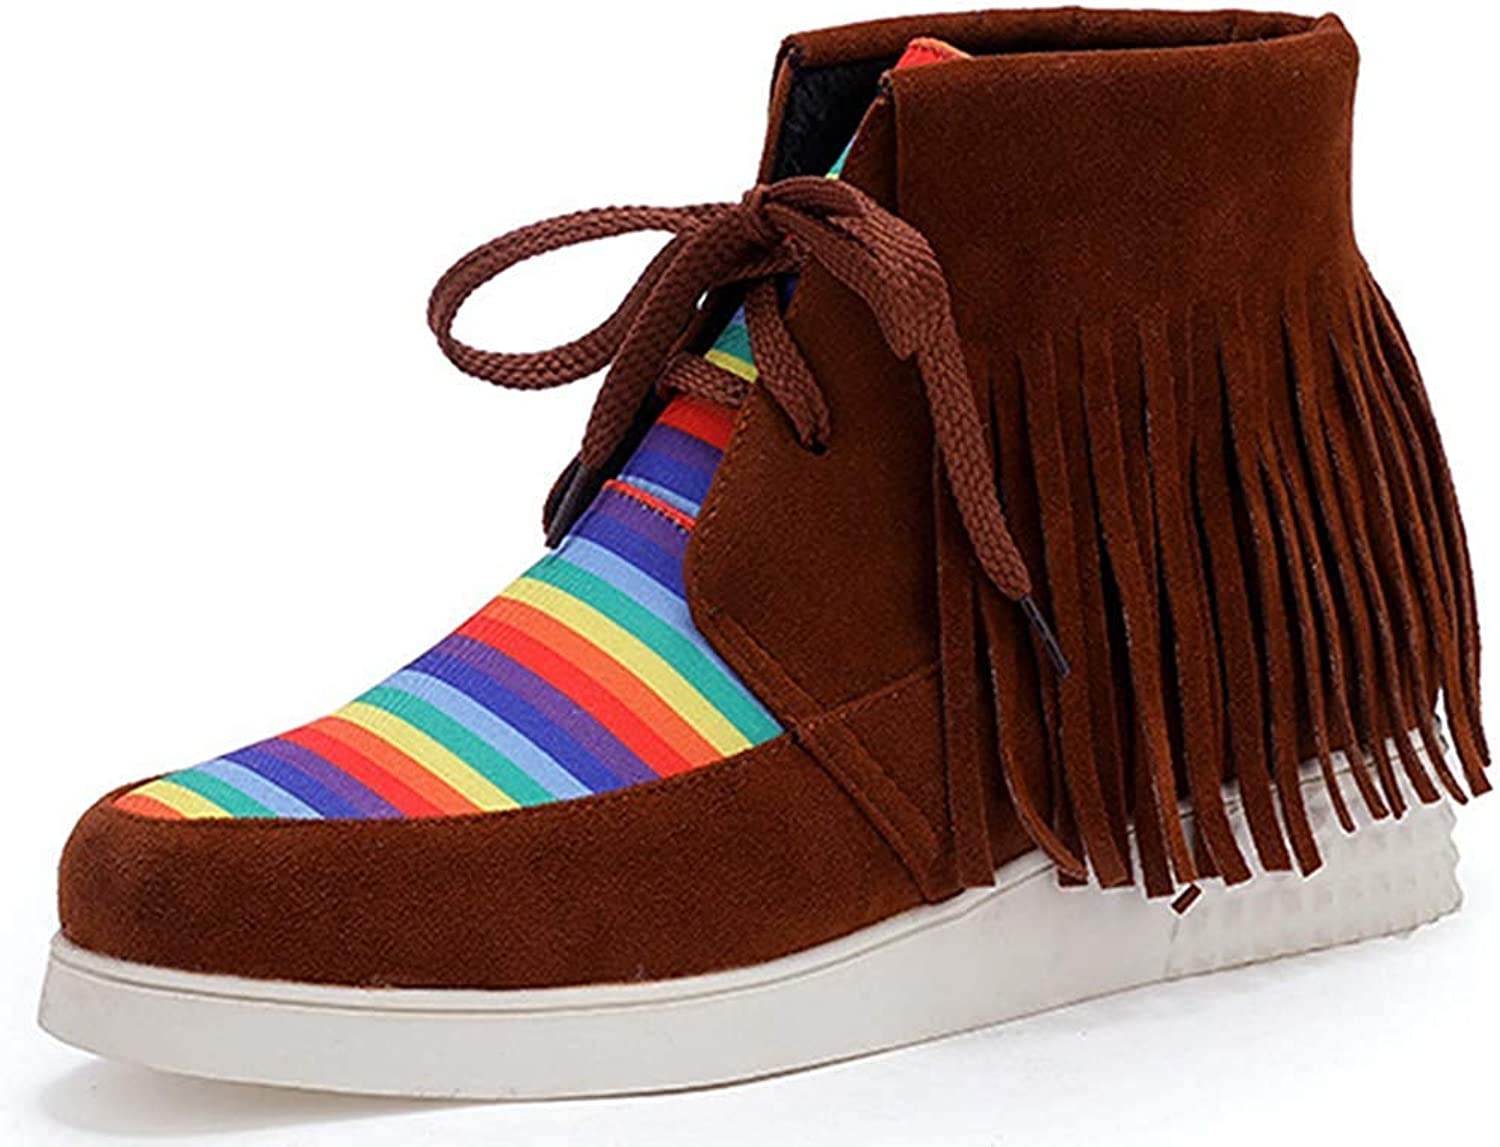 Ghssheh Women's Fringe Short Boots color Block Round Toe Lace Up Flat Ankle Booties Brown 4.5 M US